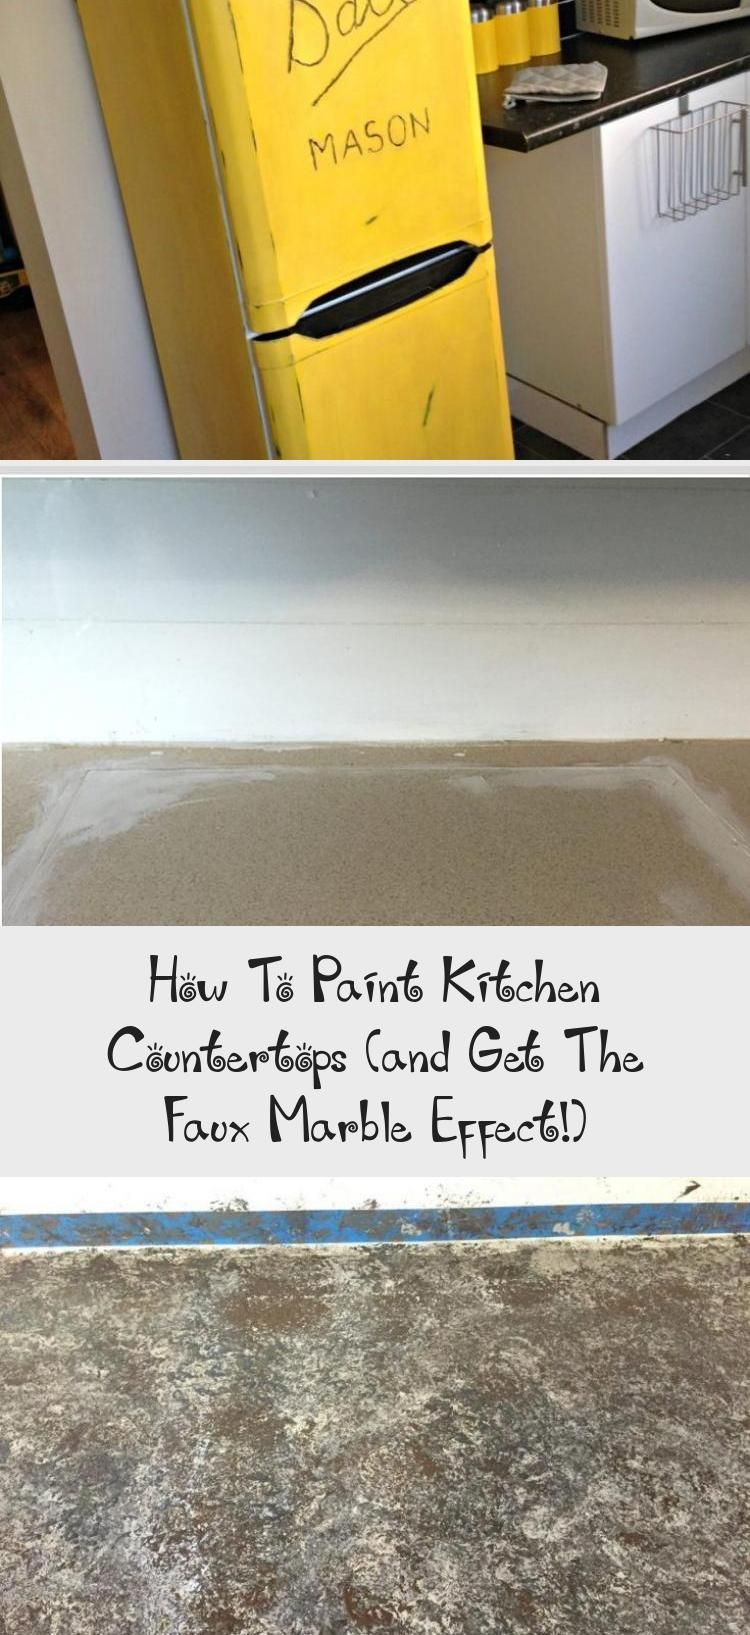 How To Paint Kitchen Countertops (and Get The Faux Marble Effect!) - KTCHN#countertops #effect #faux #kitchen #ktchn #marble #paint #marblecountertops How To Paint Kitchen Countertops (and Get The Faux Marble Effect!) - KTCHN#countertops #effect #faux #kitchen #ktchn #marble #paint #marblecountertops